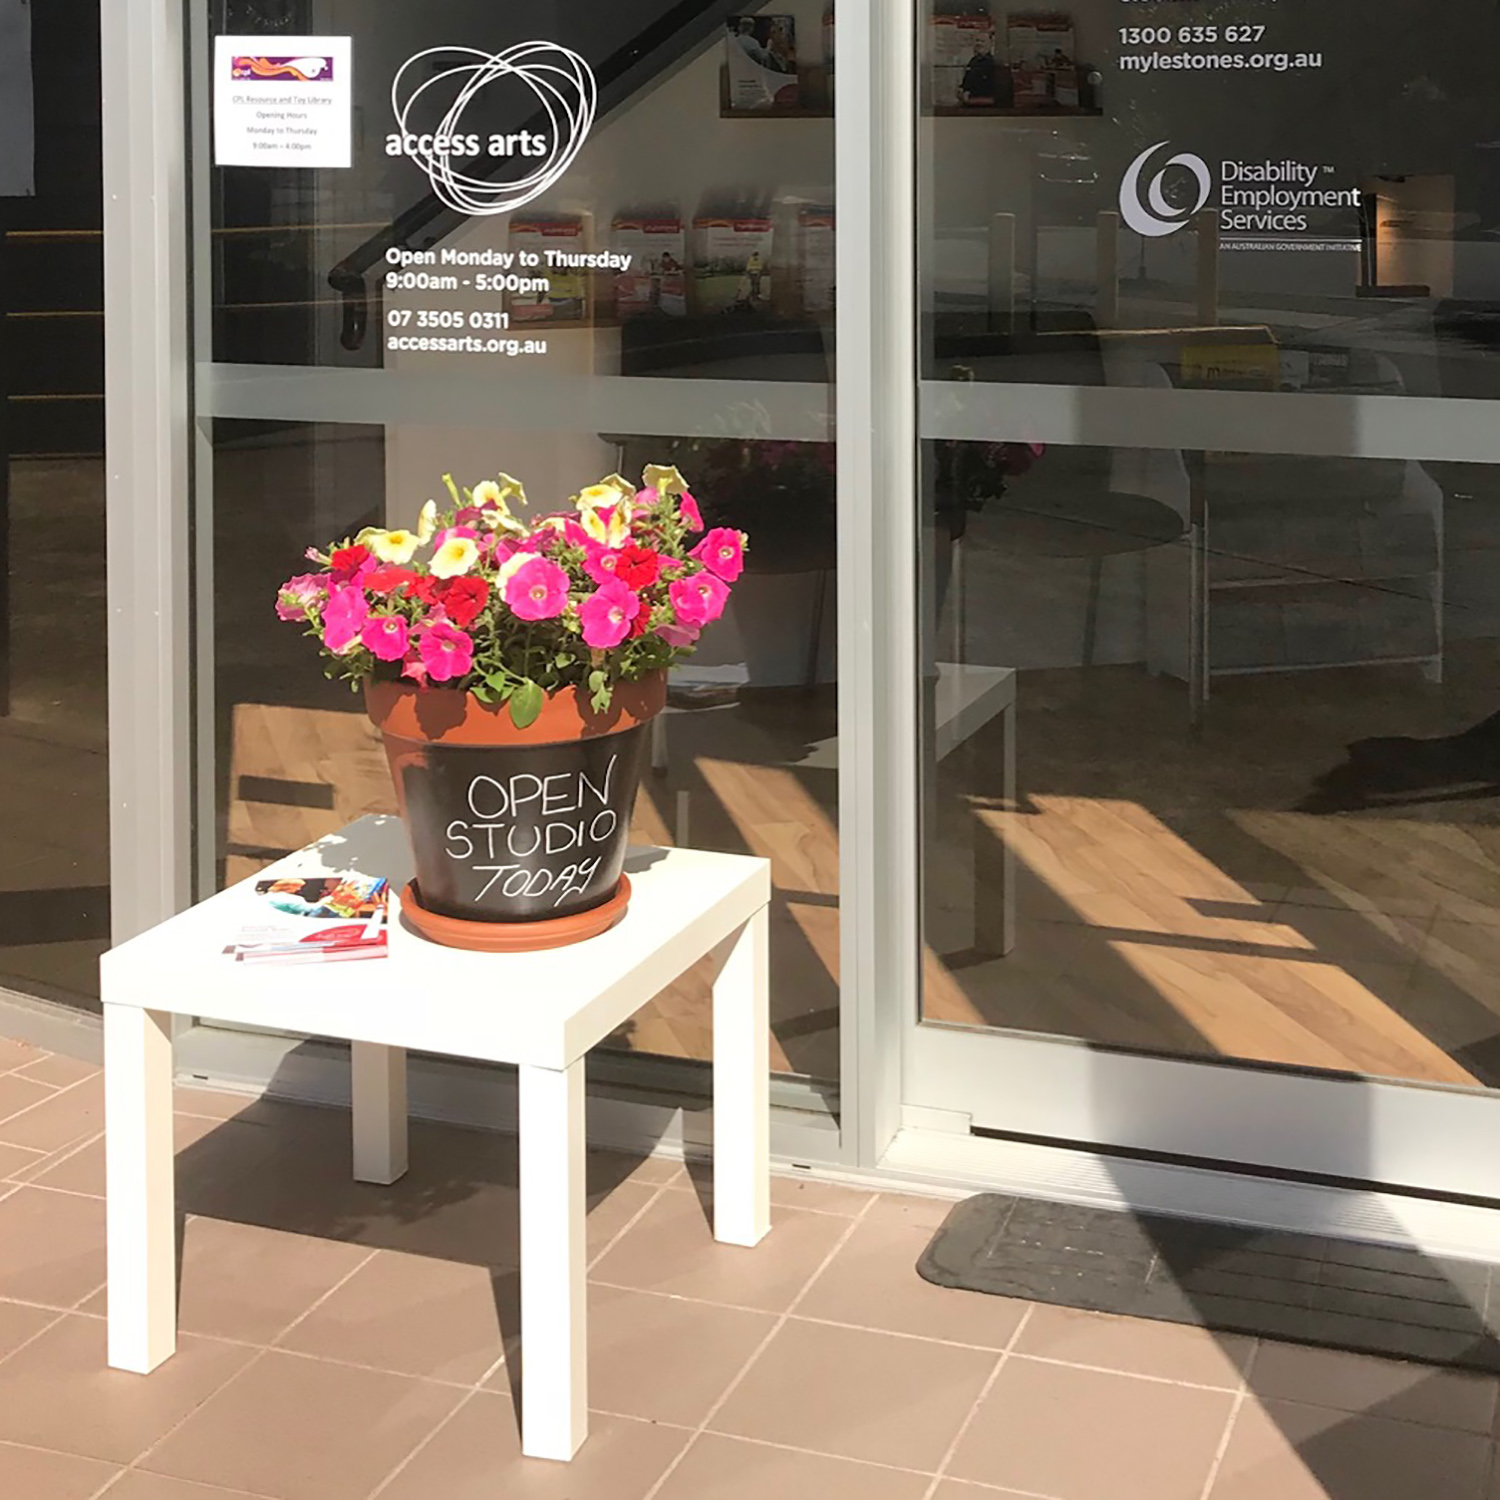 Flowerpot with bright flowers sitting on a white table outside sliding entrance doors